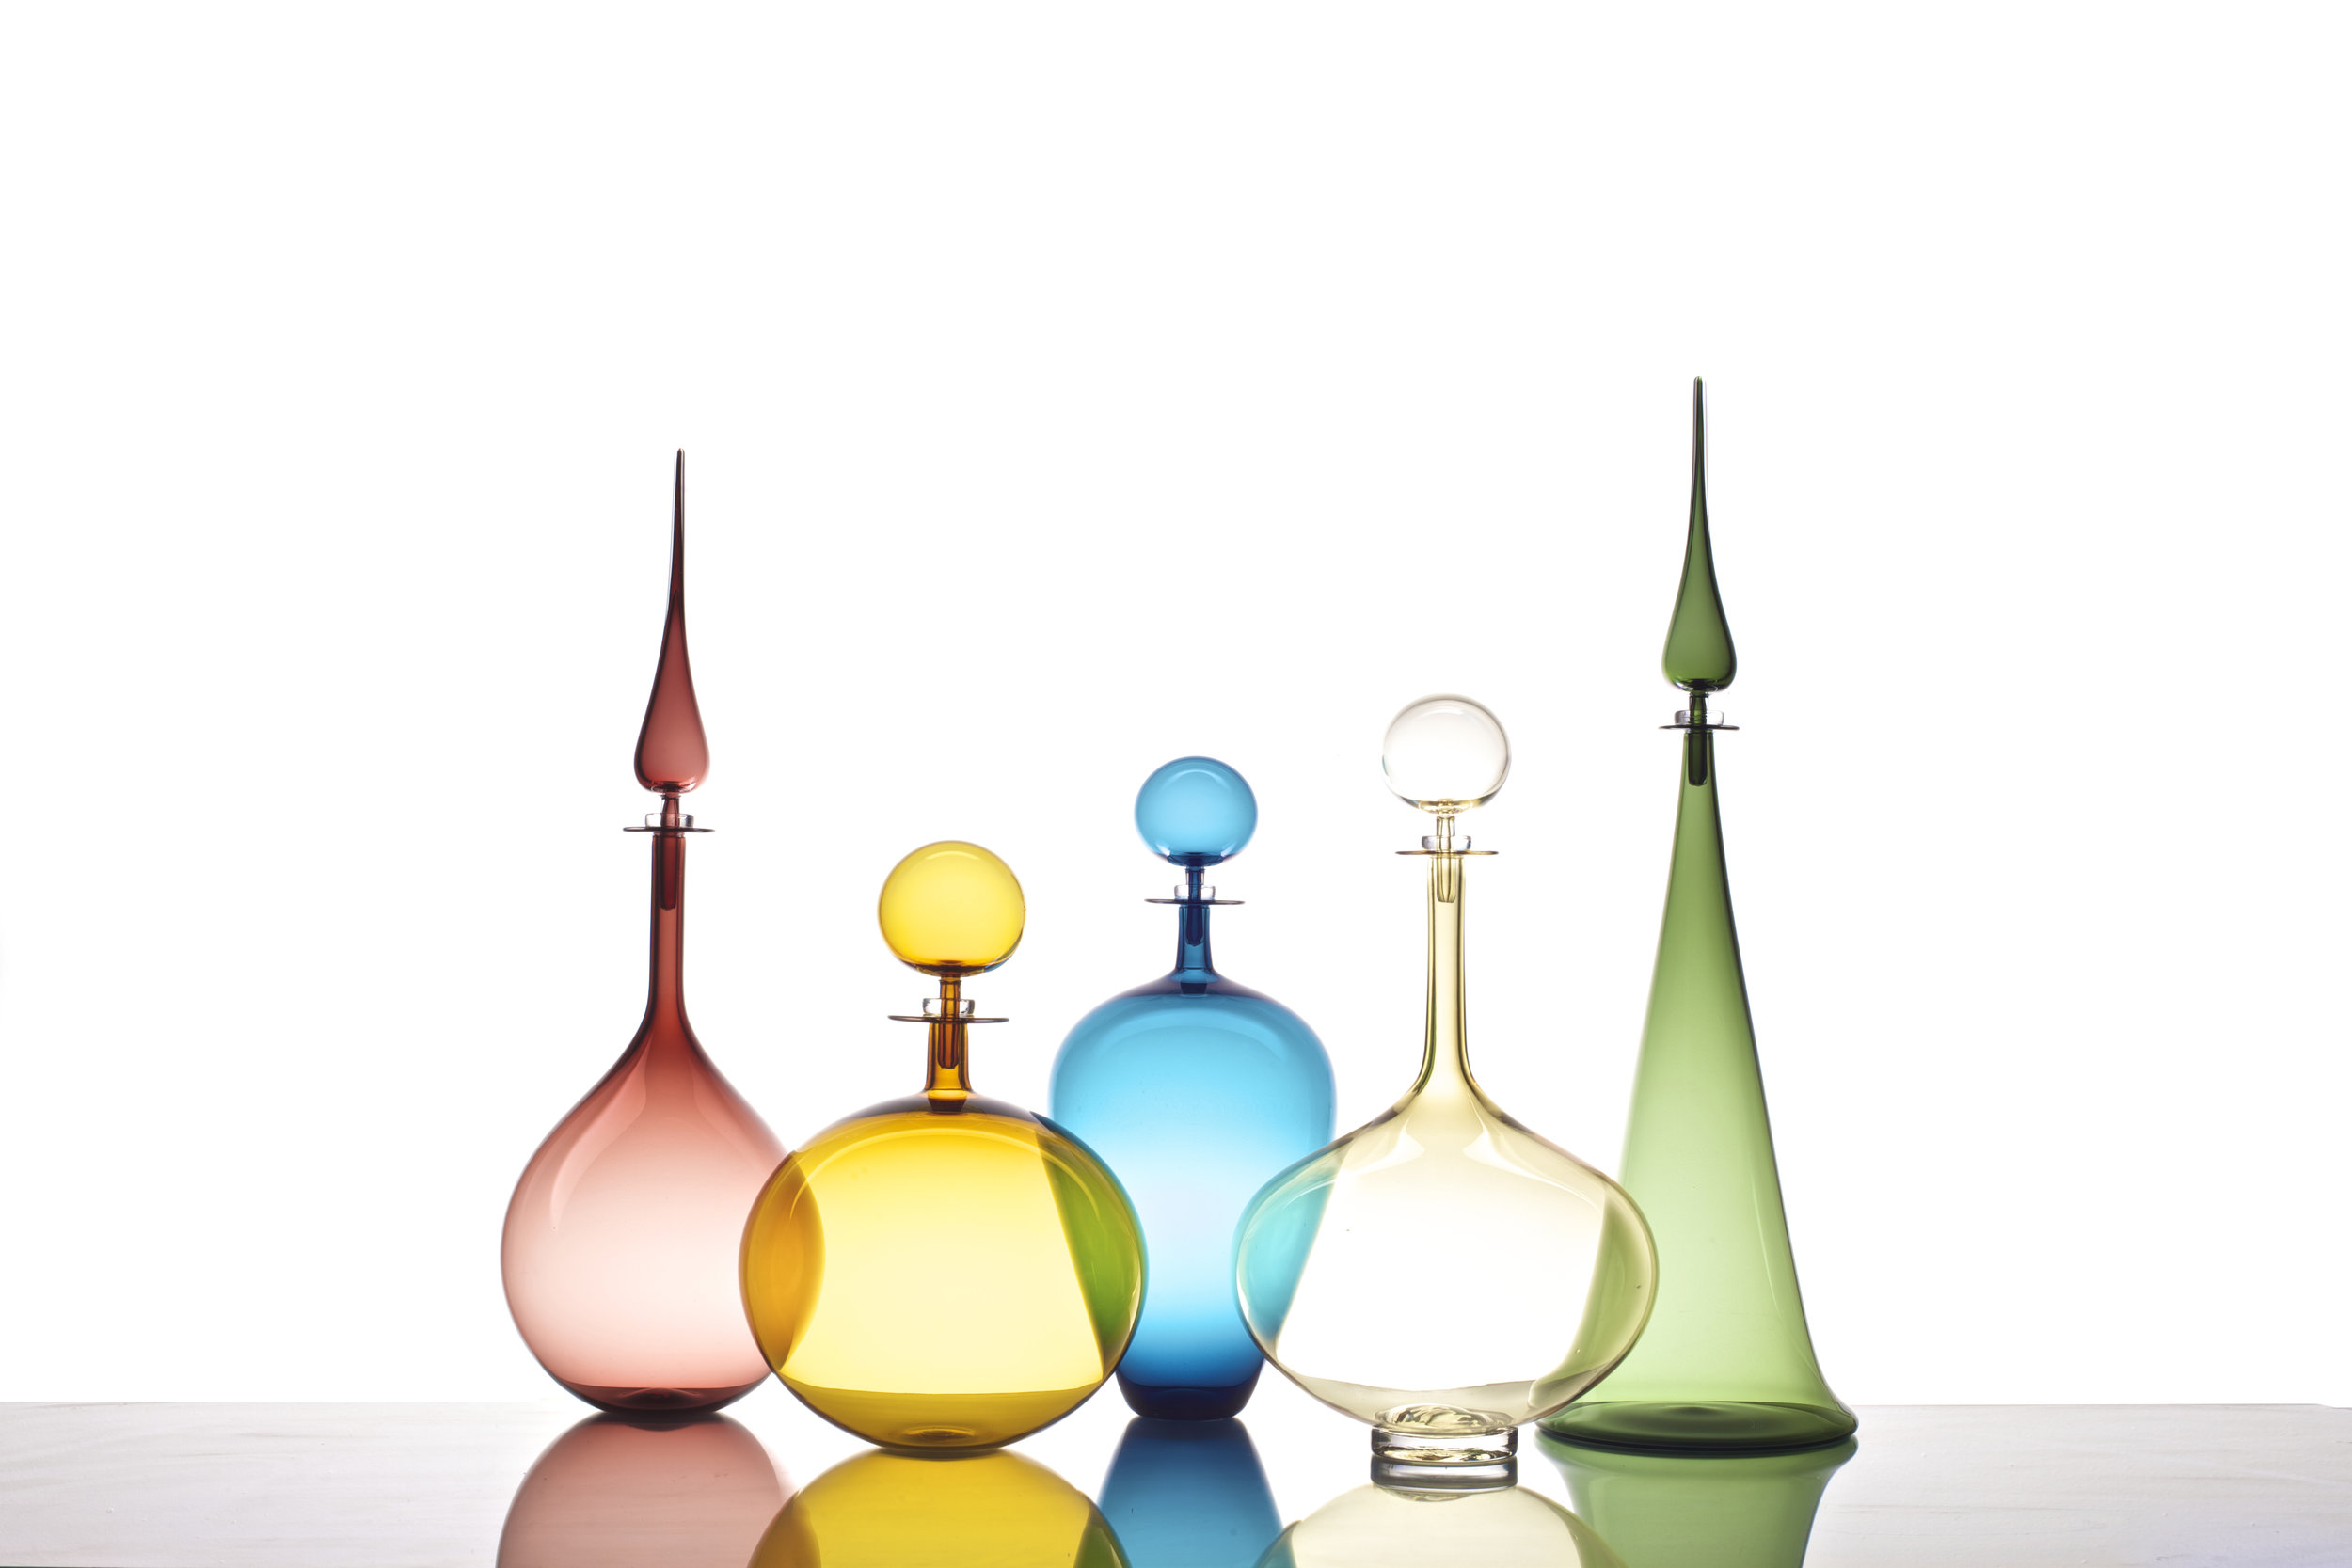 LARGE DECANTER COLLECTION: TEAR DROP PLUM, LOW ROUND AMBER, WINE JUG STEEL BLUE, GENIE BOTTLE WHISKEY, FLUTED CONE TOURMALINE